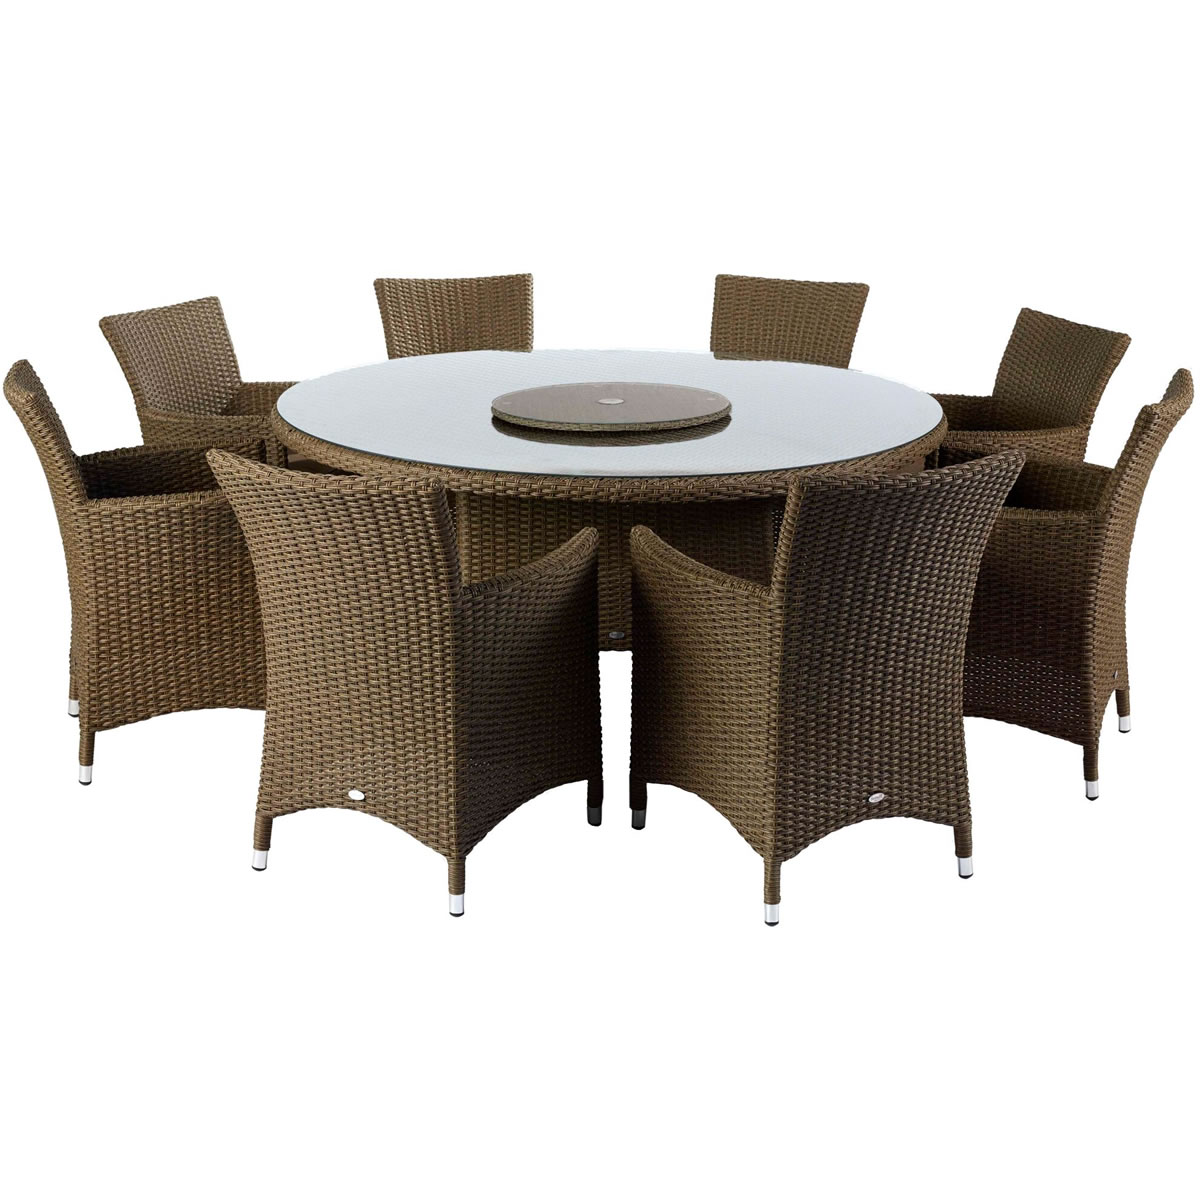 Hartman Madison 8 Seater Garden Furniture Set   £1099 | Garden4Less UK  Shop.  Part 51